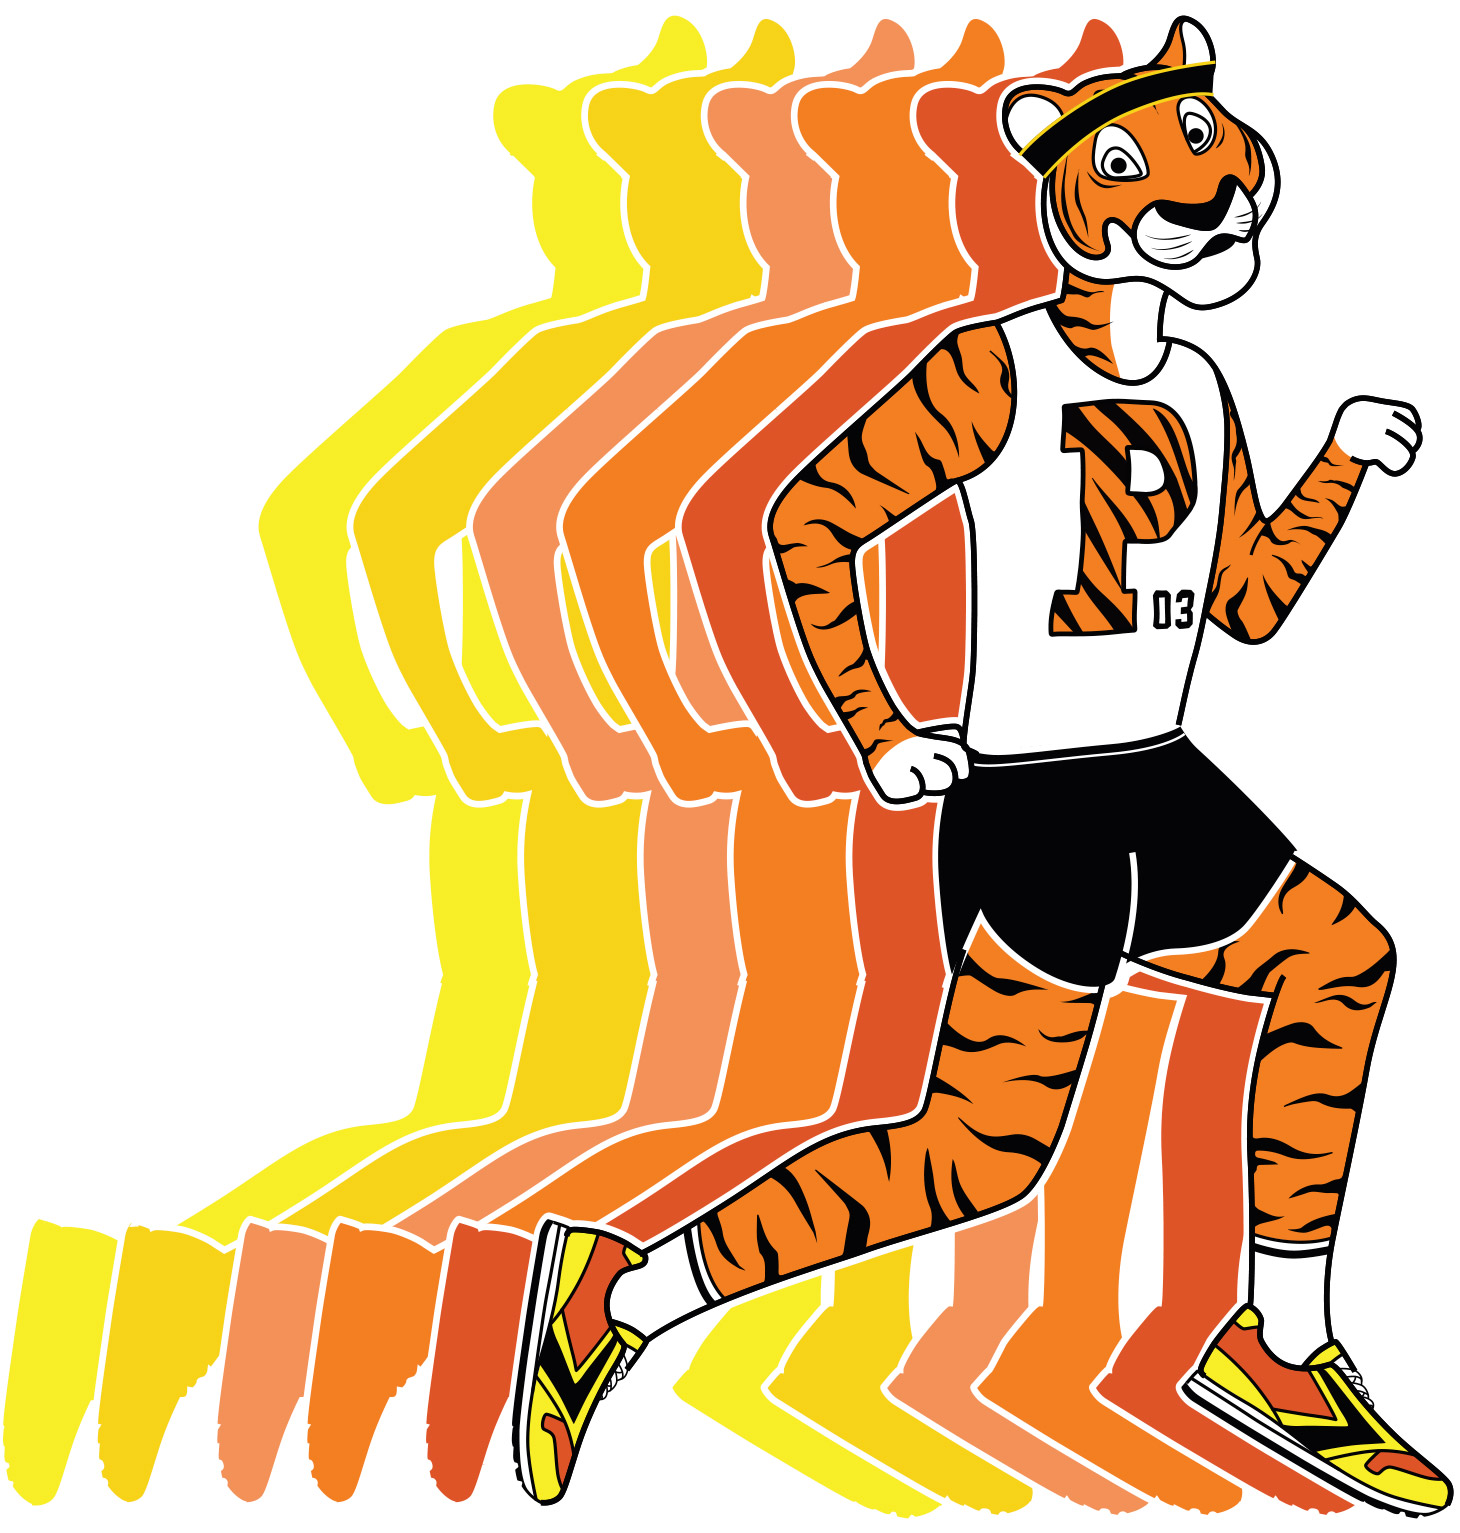 Running Tiger Illustration in Marathon